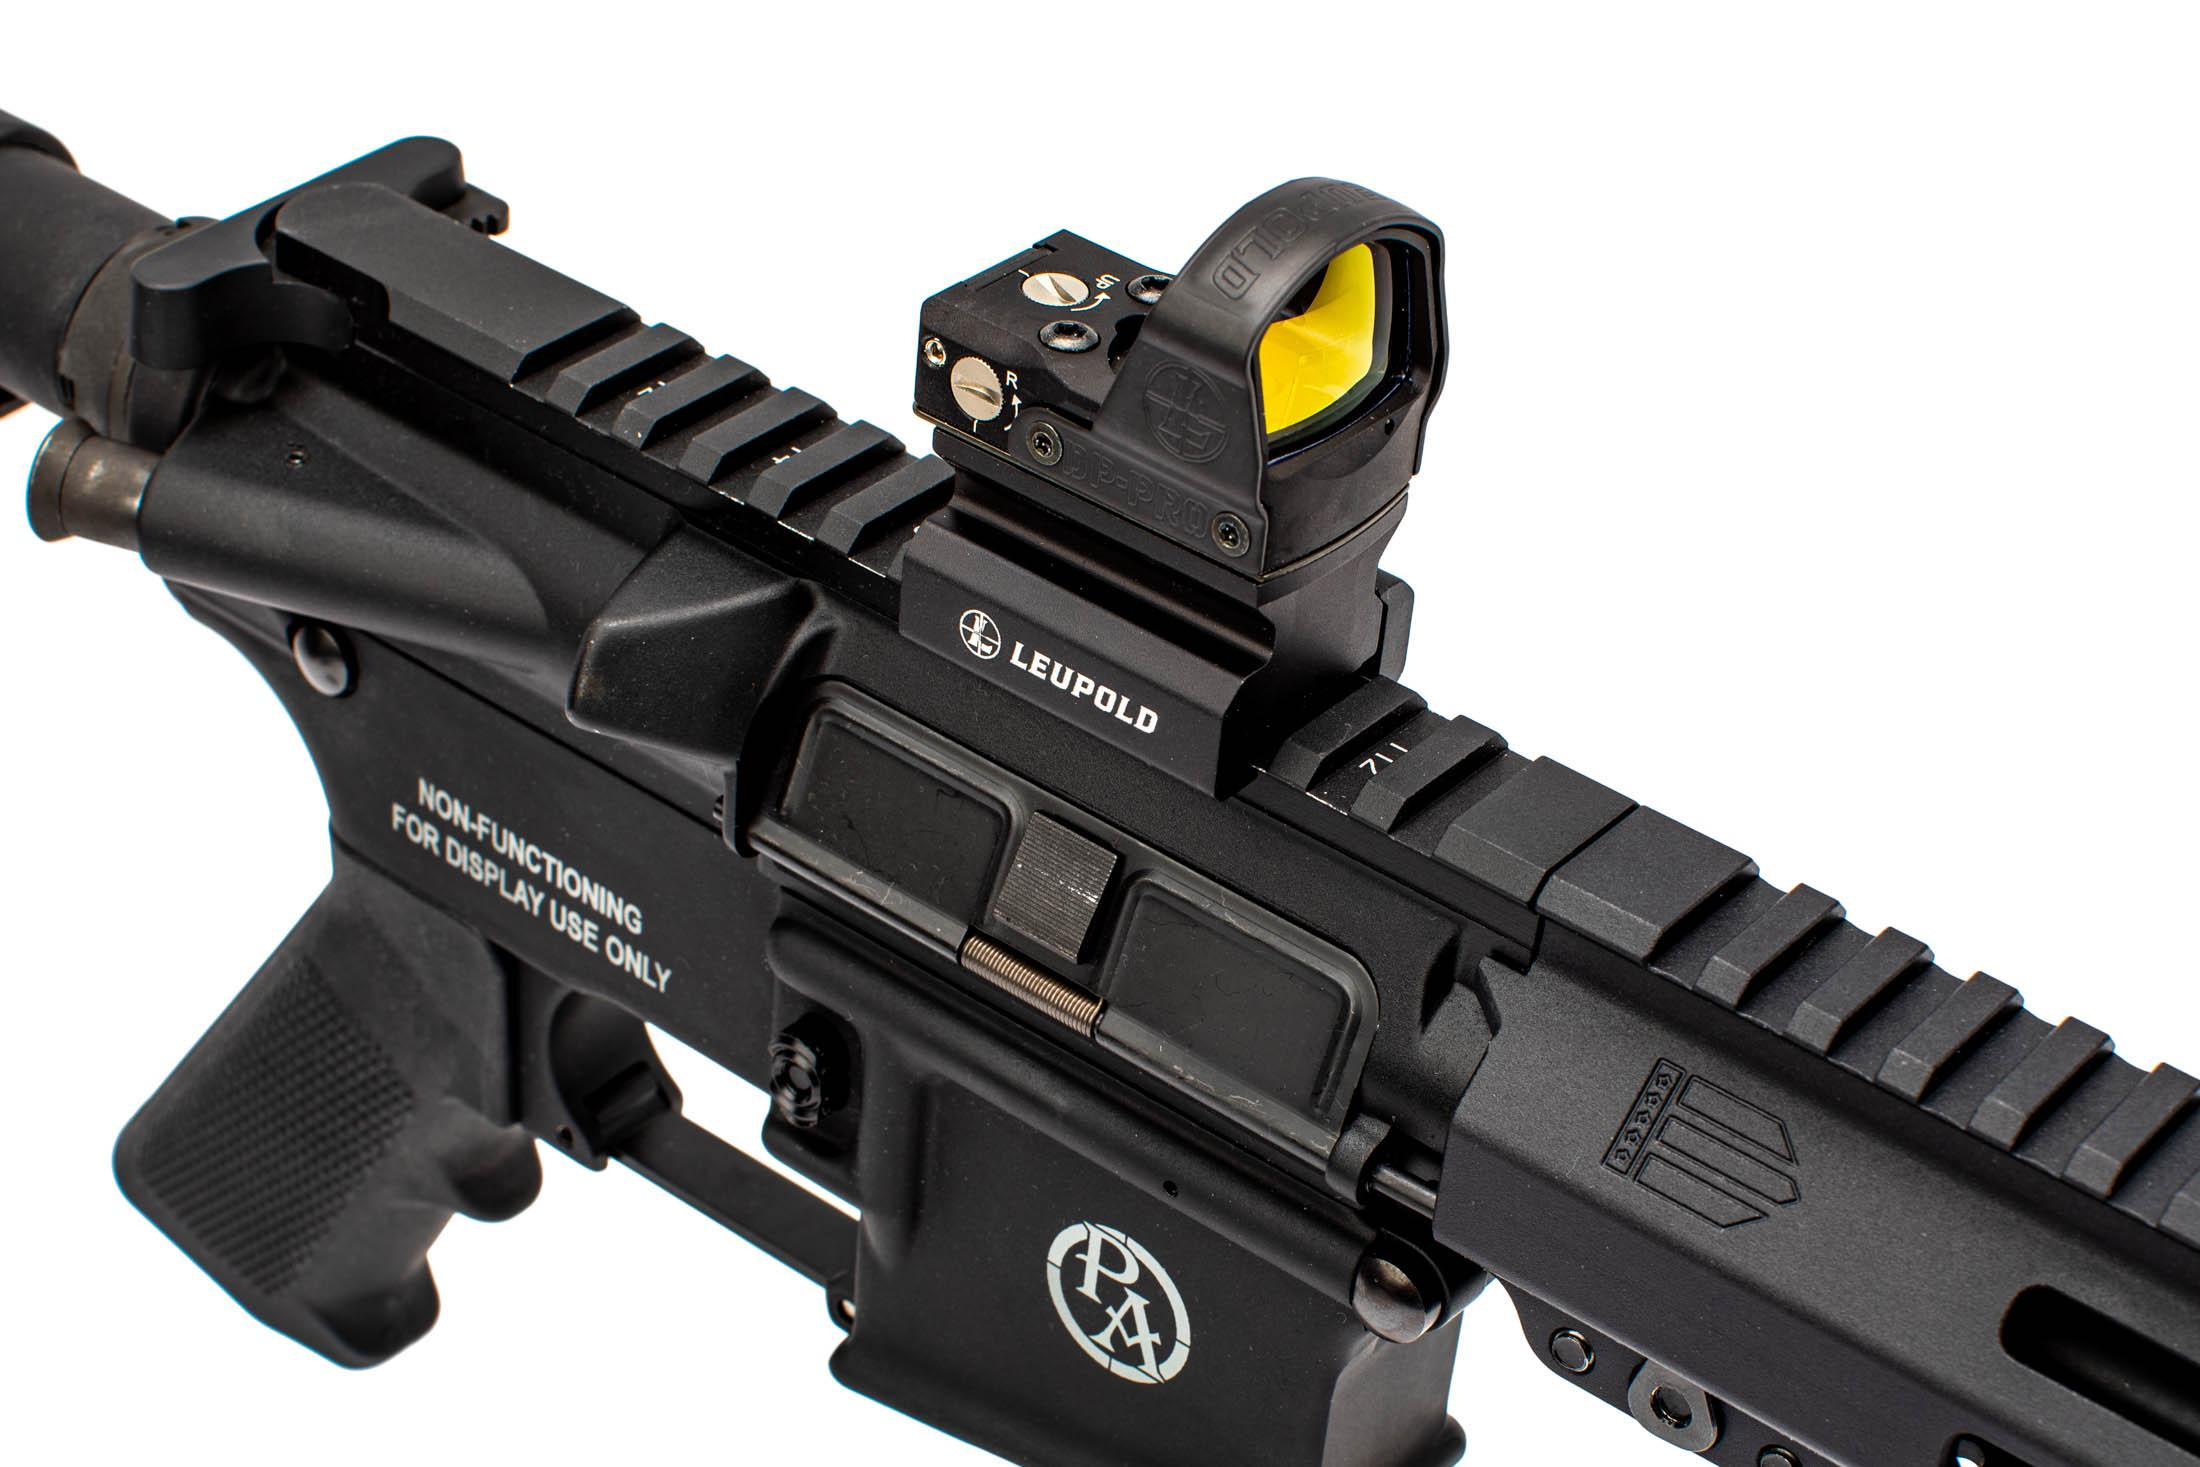 Leupold 2.5 MOA DeltaPoint PRO compact reflex sight with AR-height mount